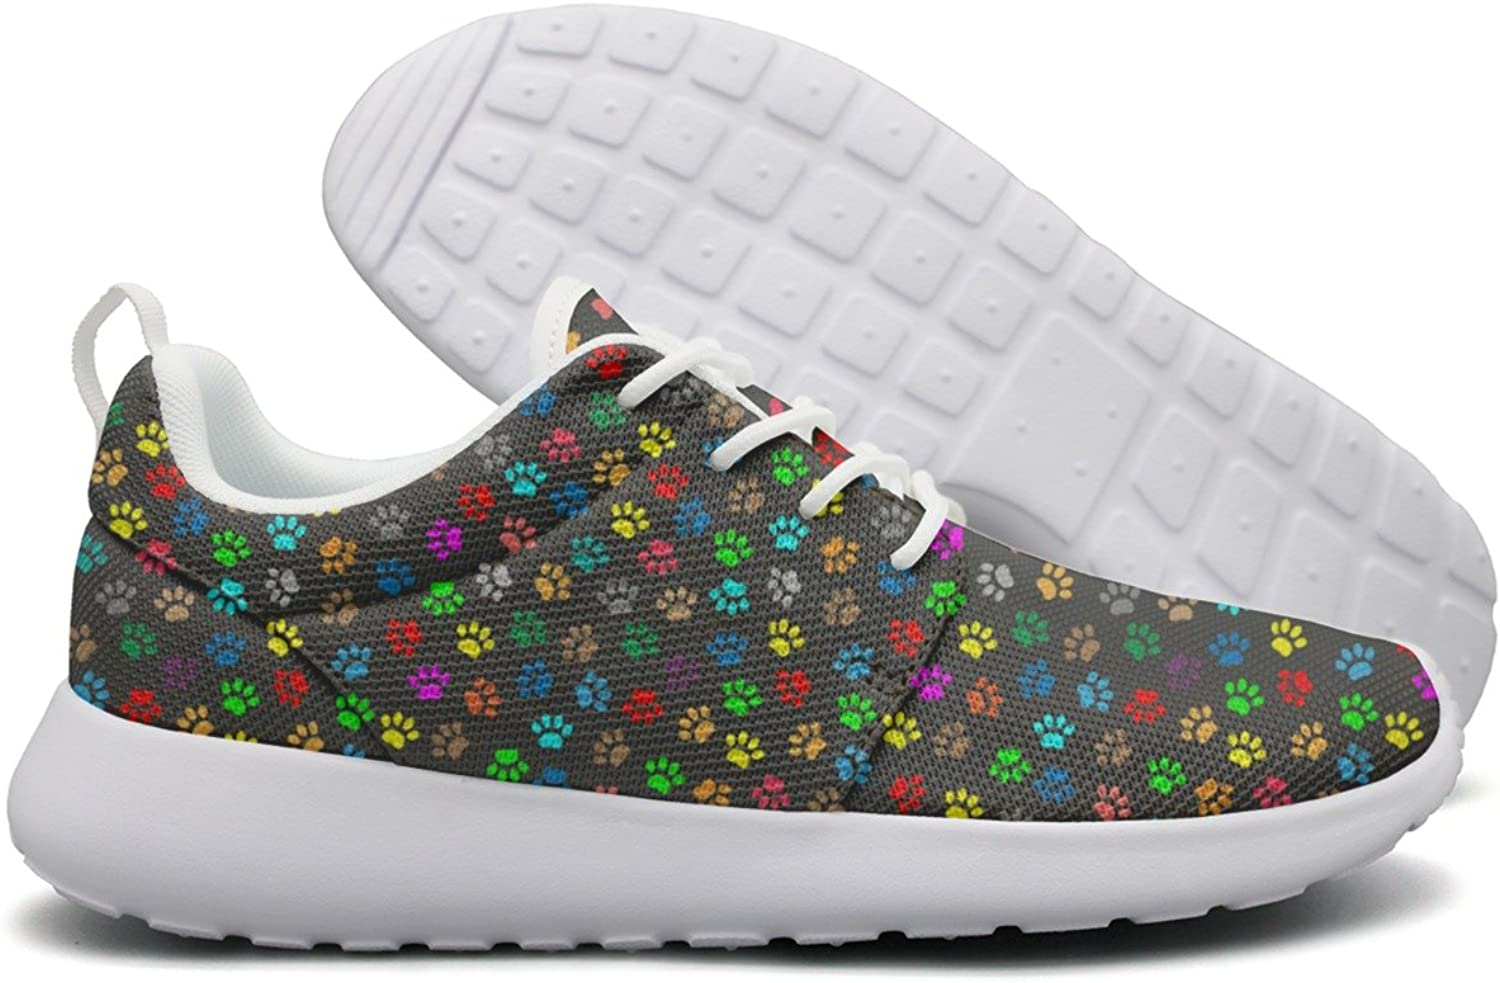 Hoohle Sports Colourful Cats Footprint Black Background Womens Roshe One Flex Mesh Casual shoes for Men